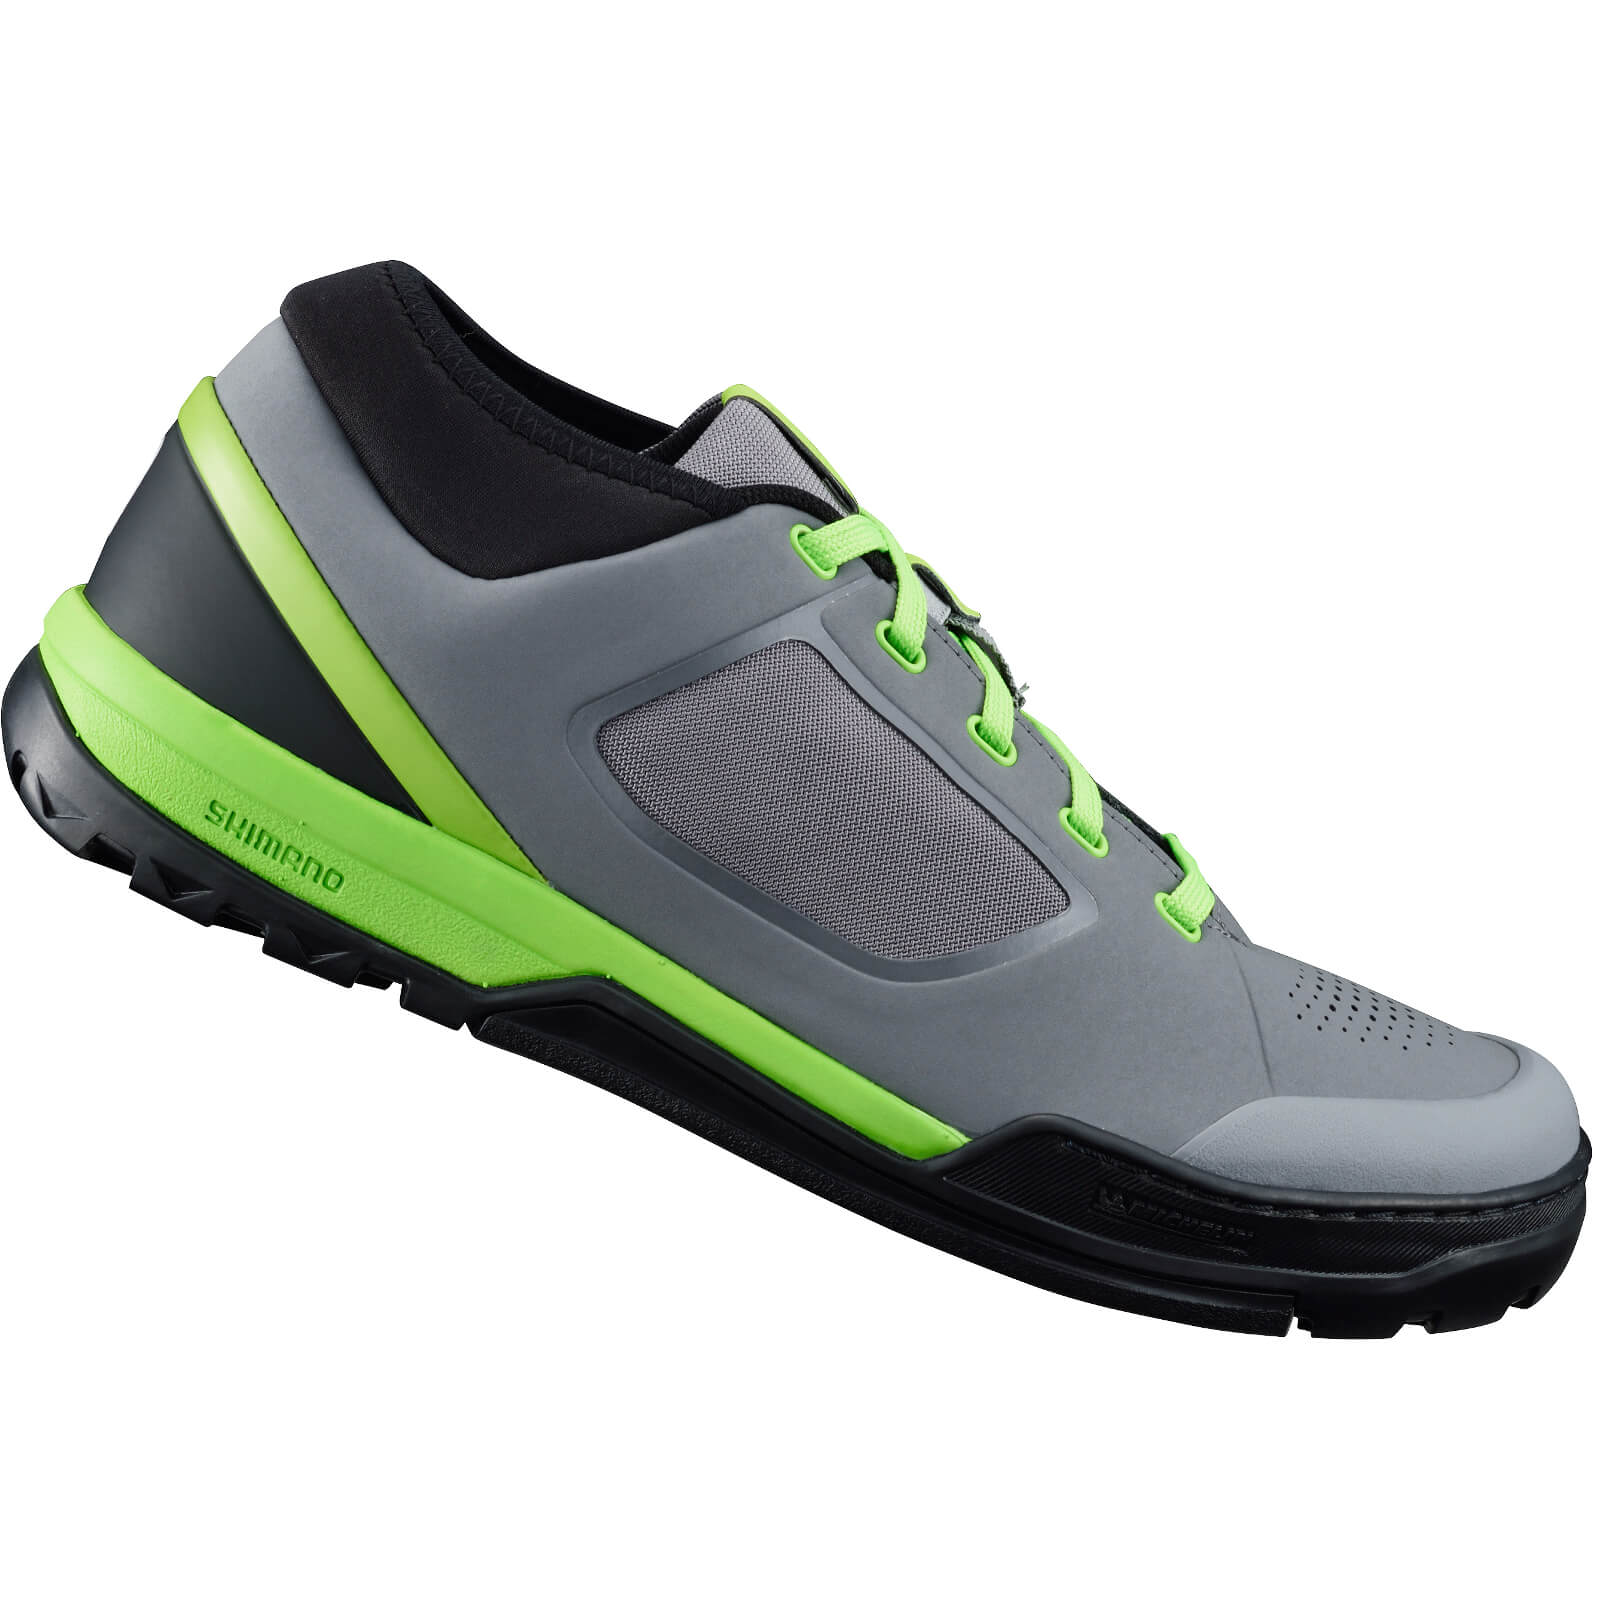 Shimano GR7 MTB Shoes - for Flat Pedals - Grey/Green